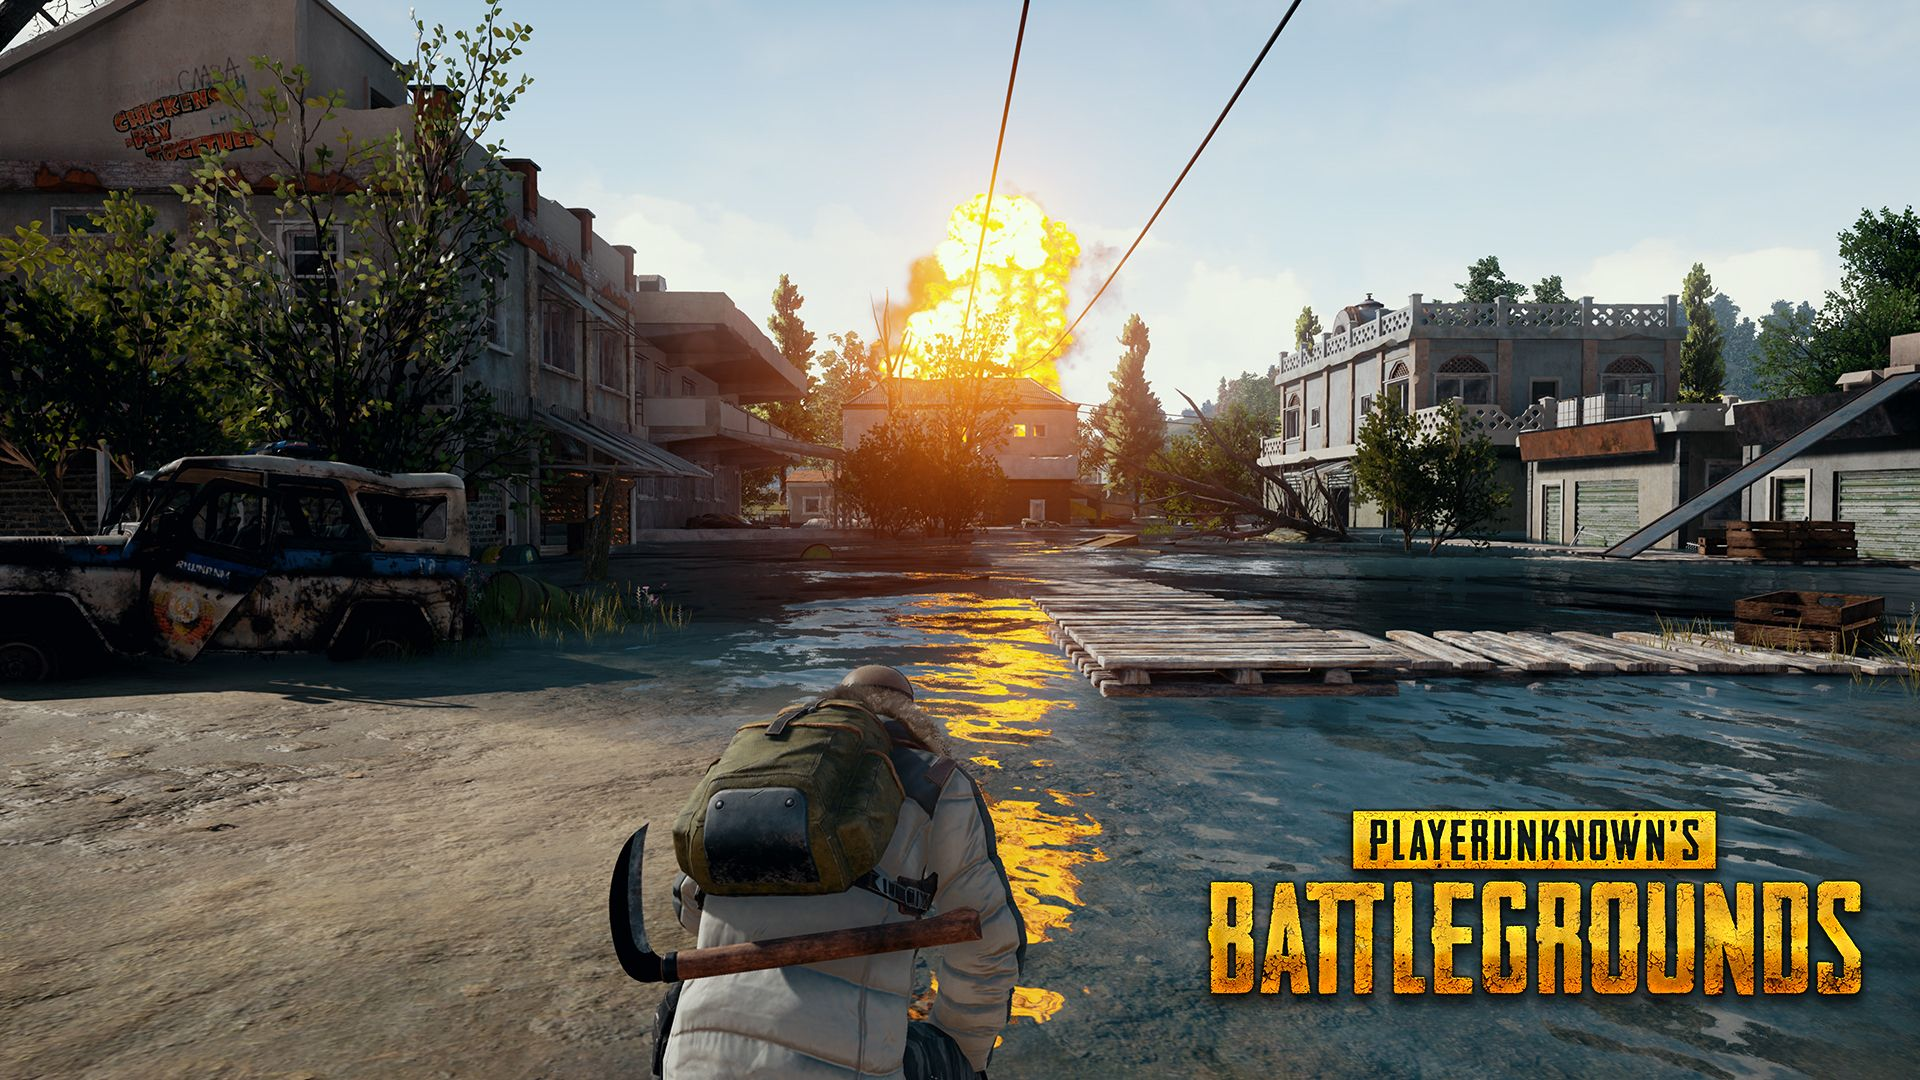 wp2474966 - PUBG: Actualización del Anti-Cheat en camino